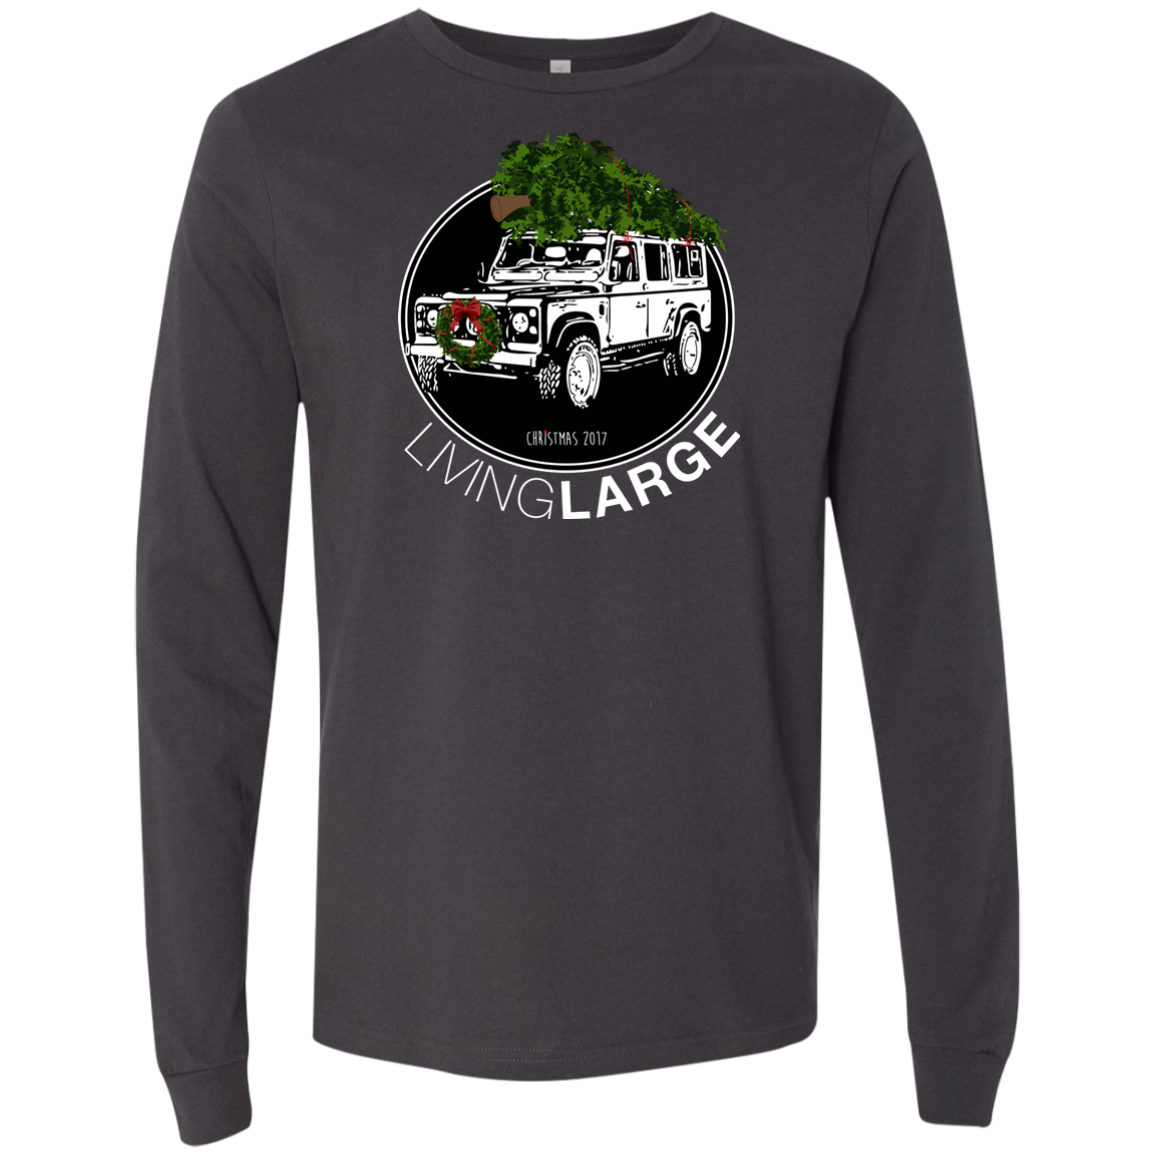 Living Large - The Blissful Bella Christmas Men's Jersey Long Sleeve T-Shirt